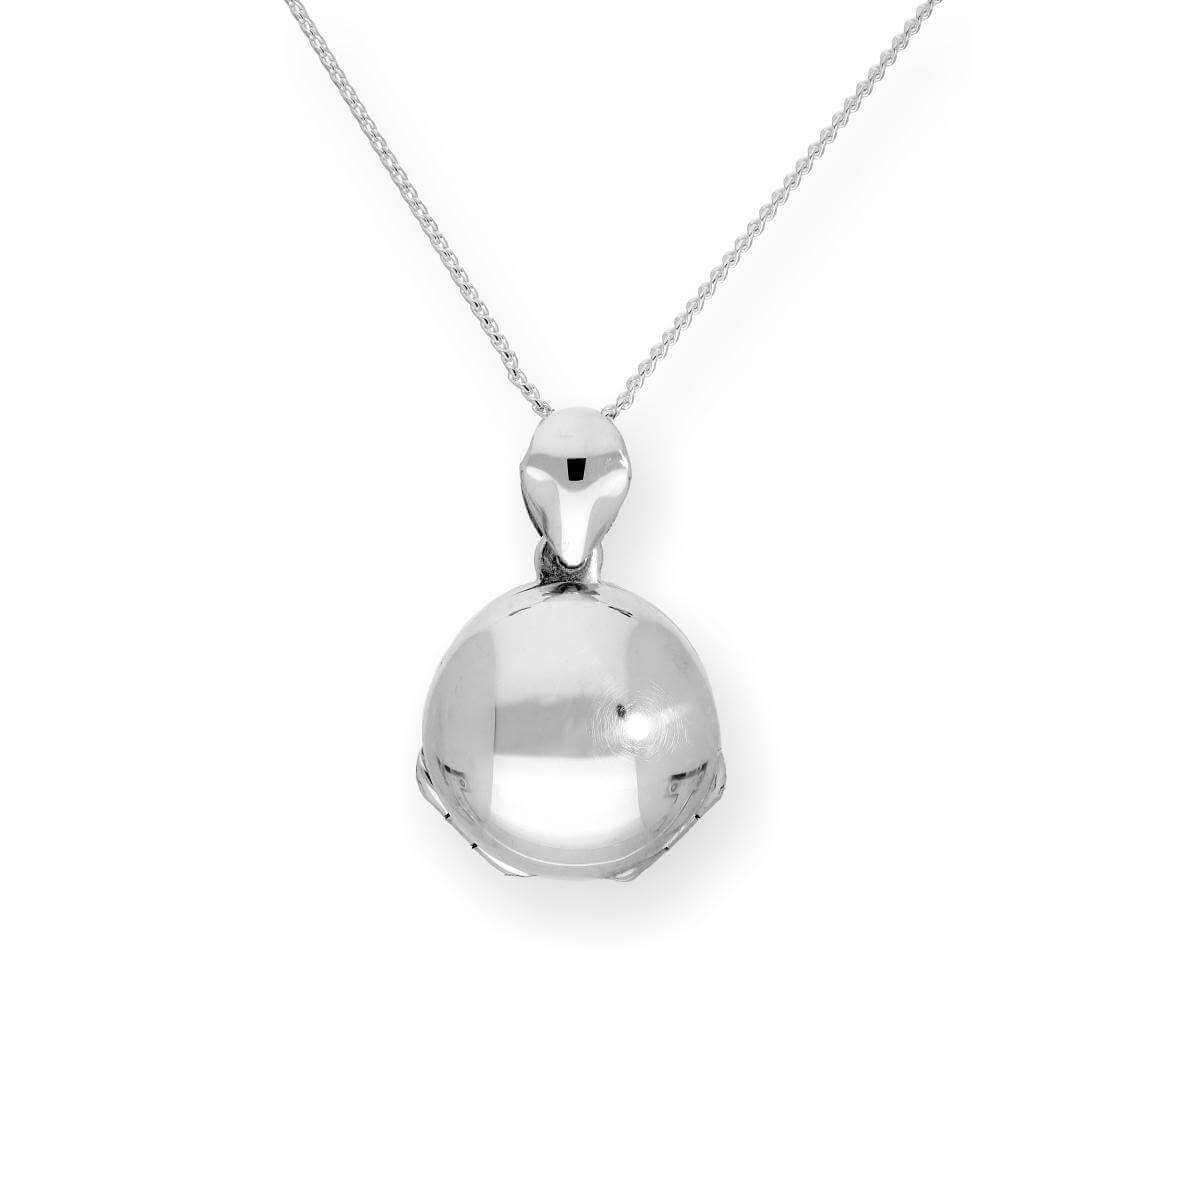 Tiny Sterling Silver 4 Photo Engravable Round Family Locket on Chain 16-22 Inches